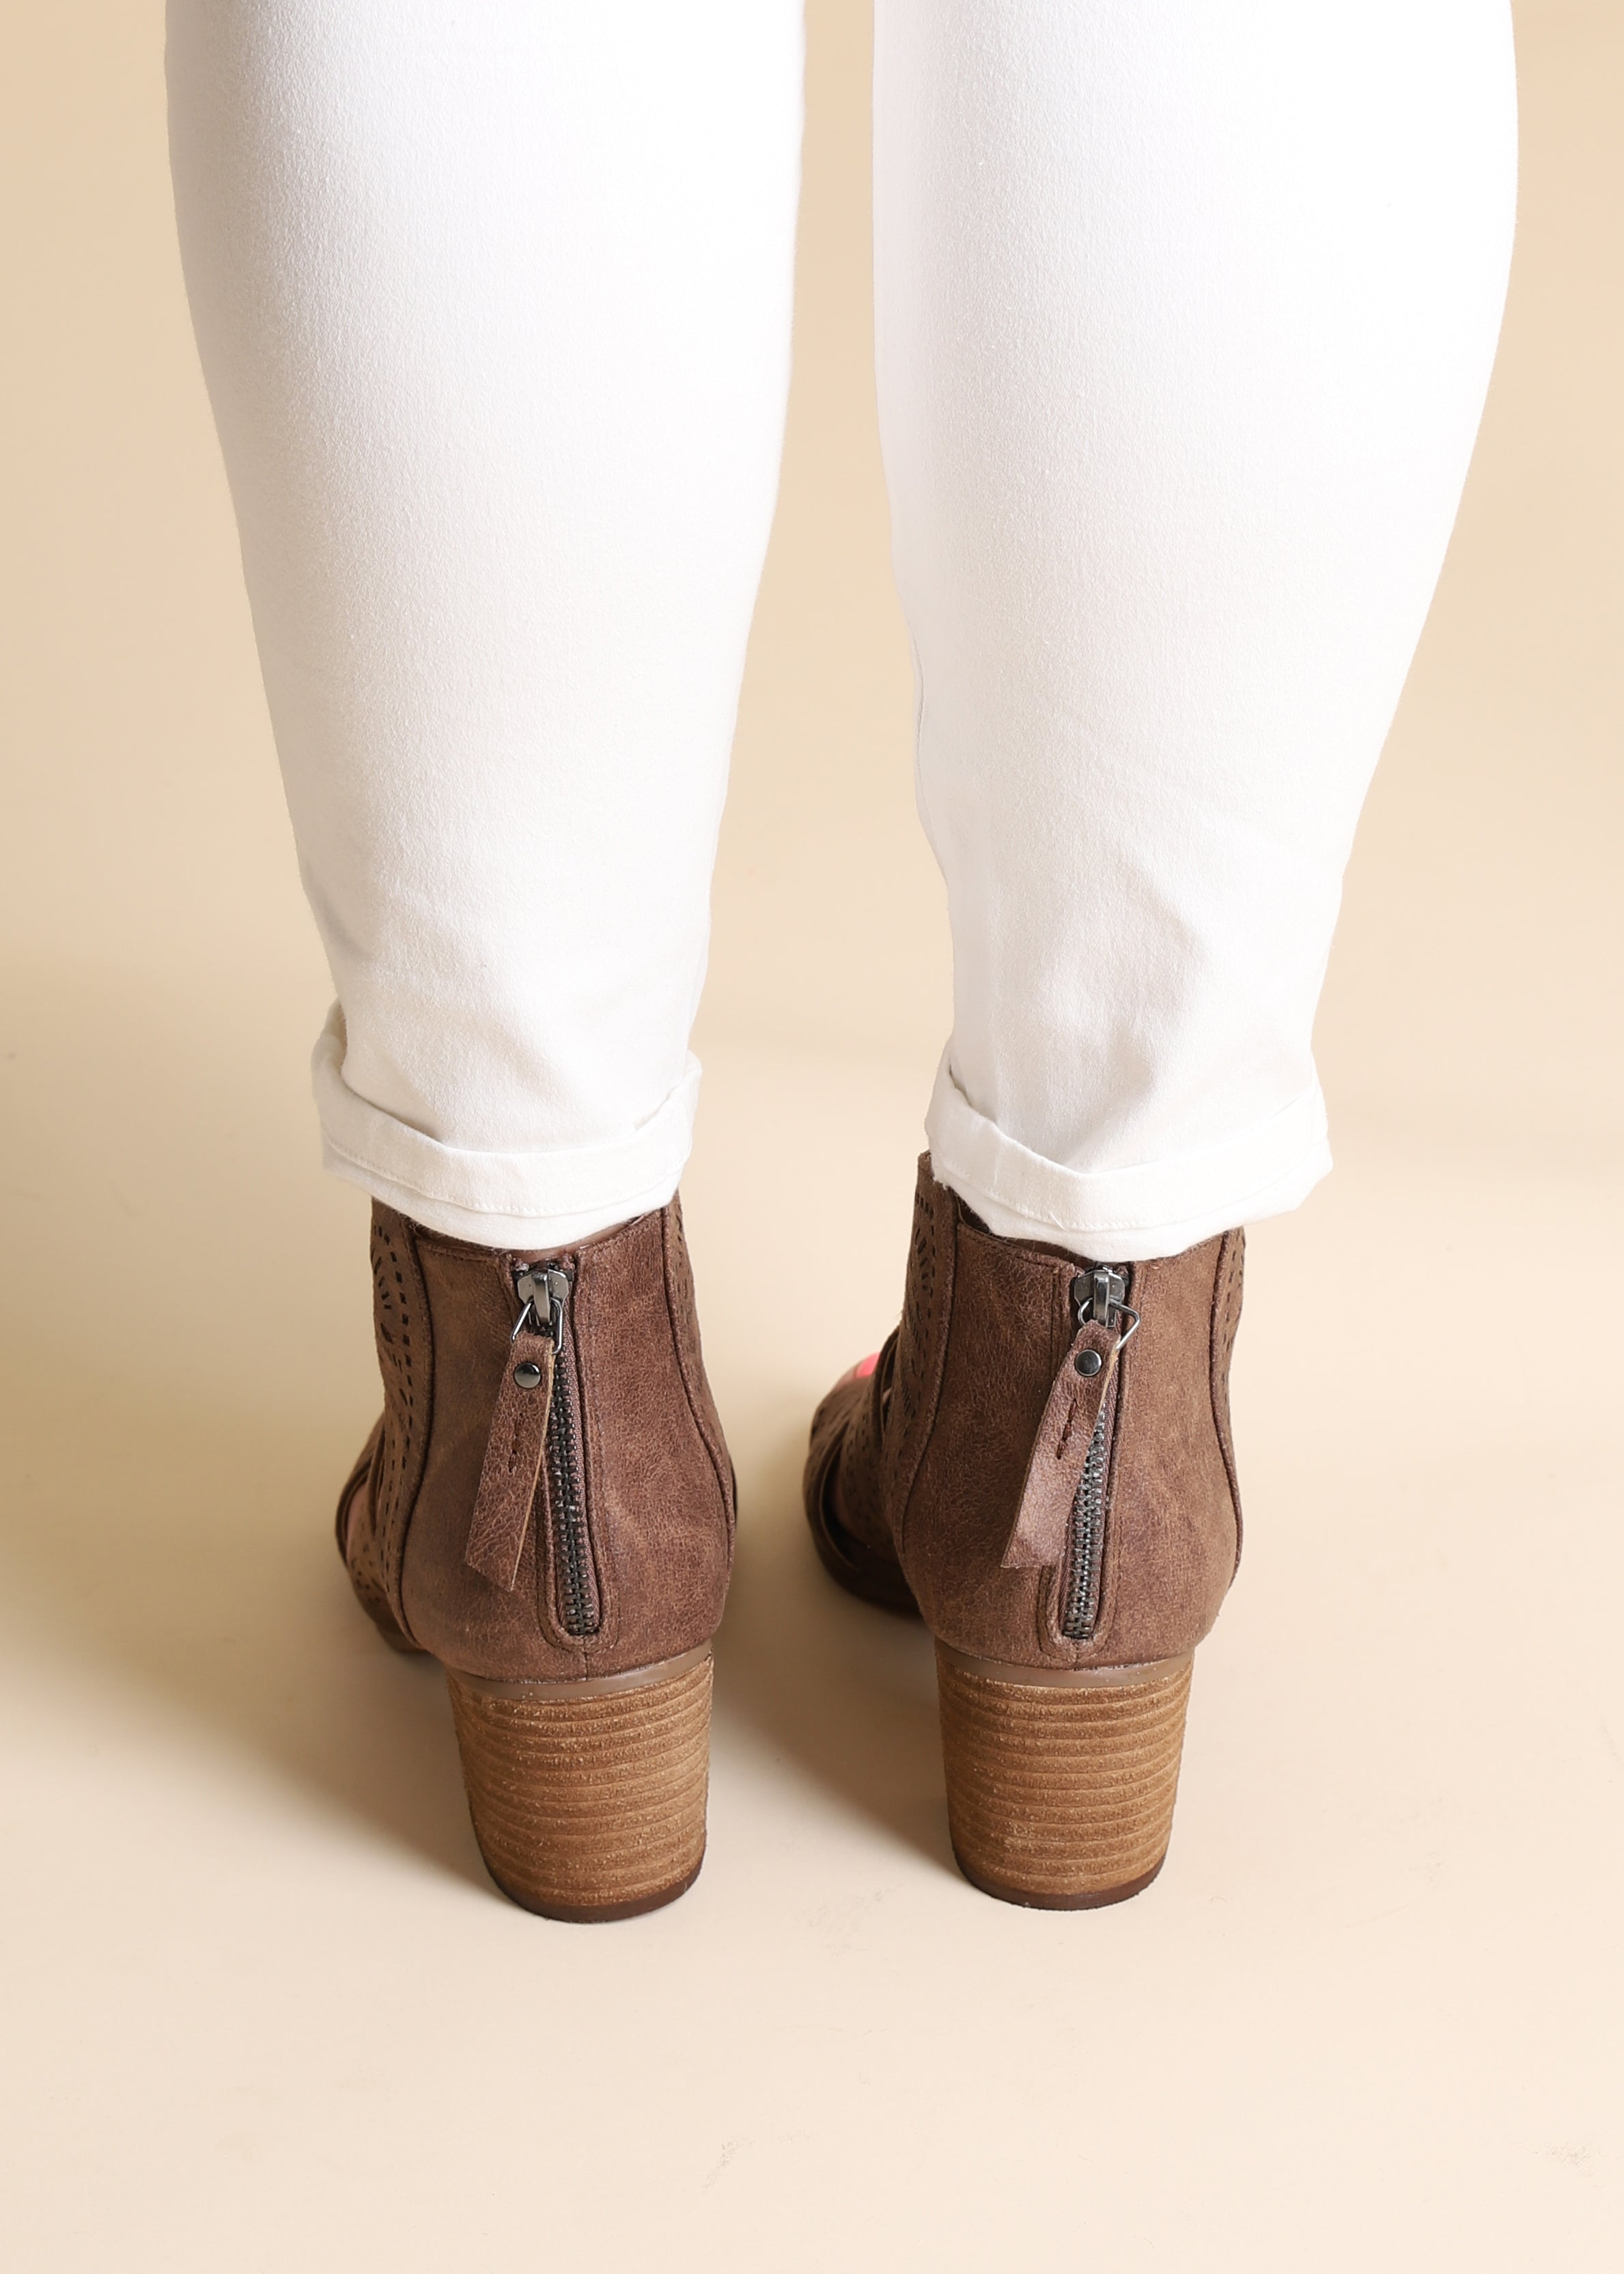 Silhouette Bootie - BROWN FINAL SALE